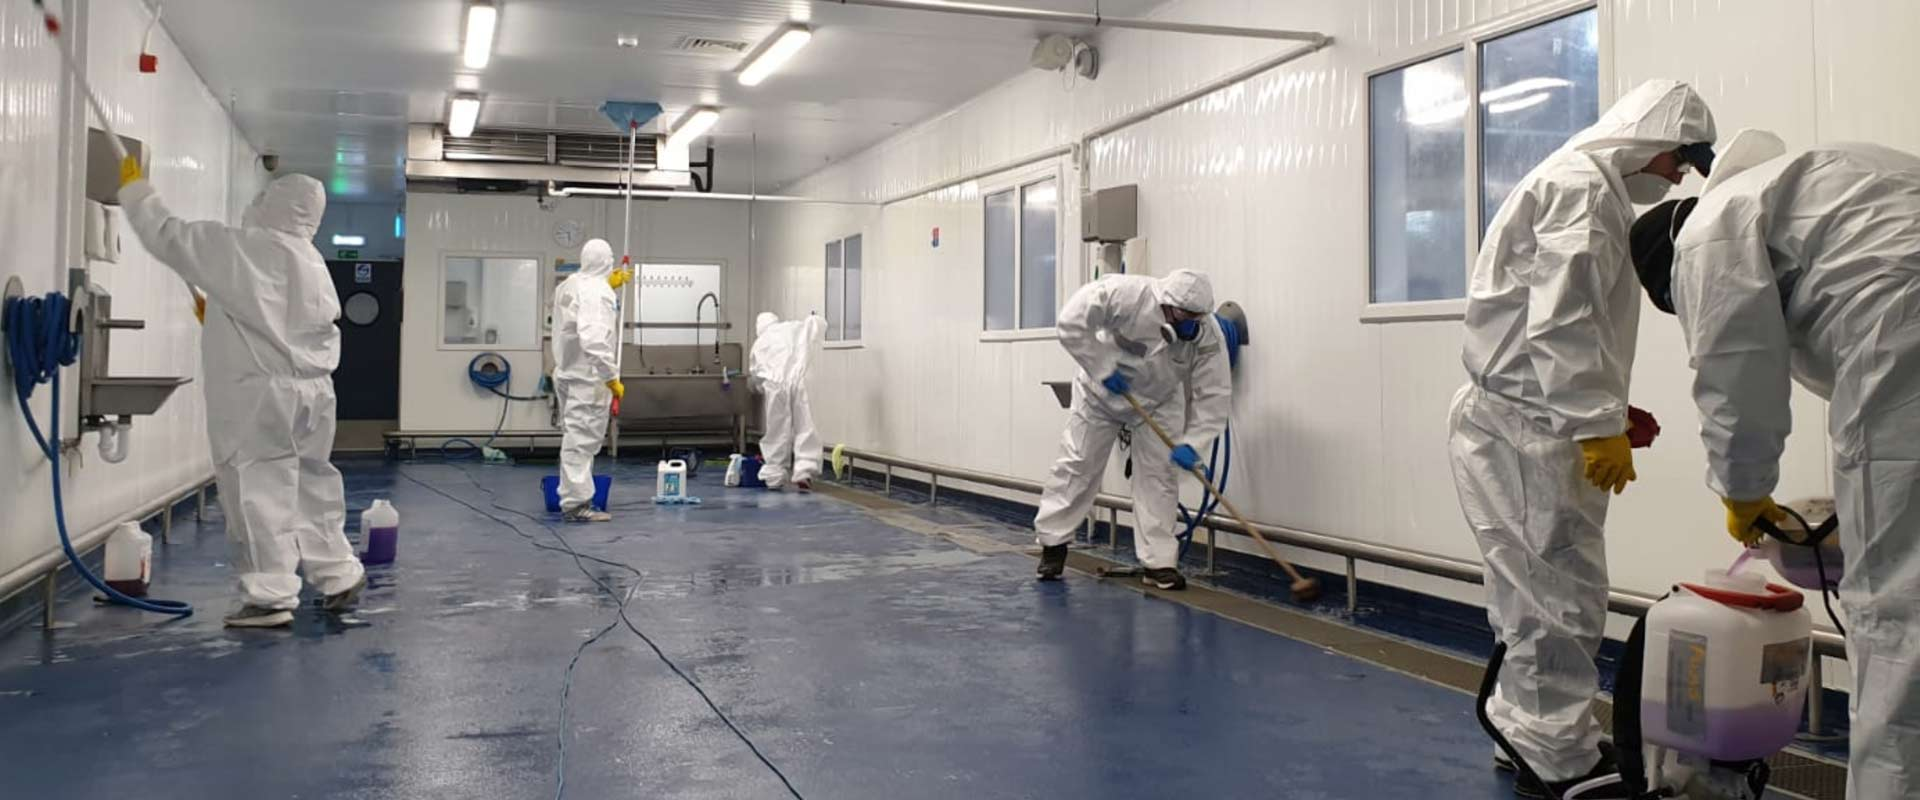 Antiviral fogging service, Antiviral Cleaning, COVID-19 Cleaning, Antiviral cleaning services, Antiviral cleaning company